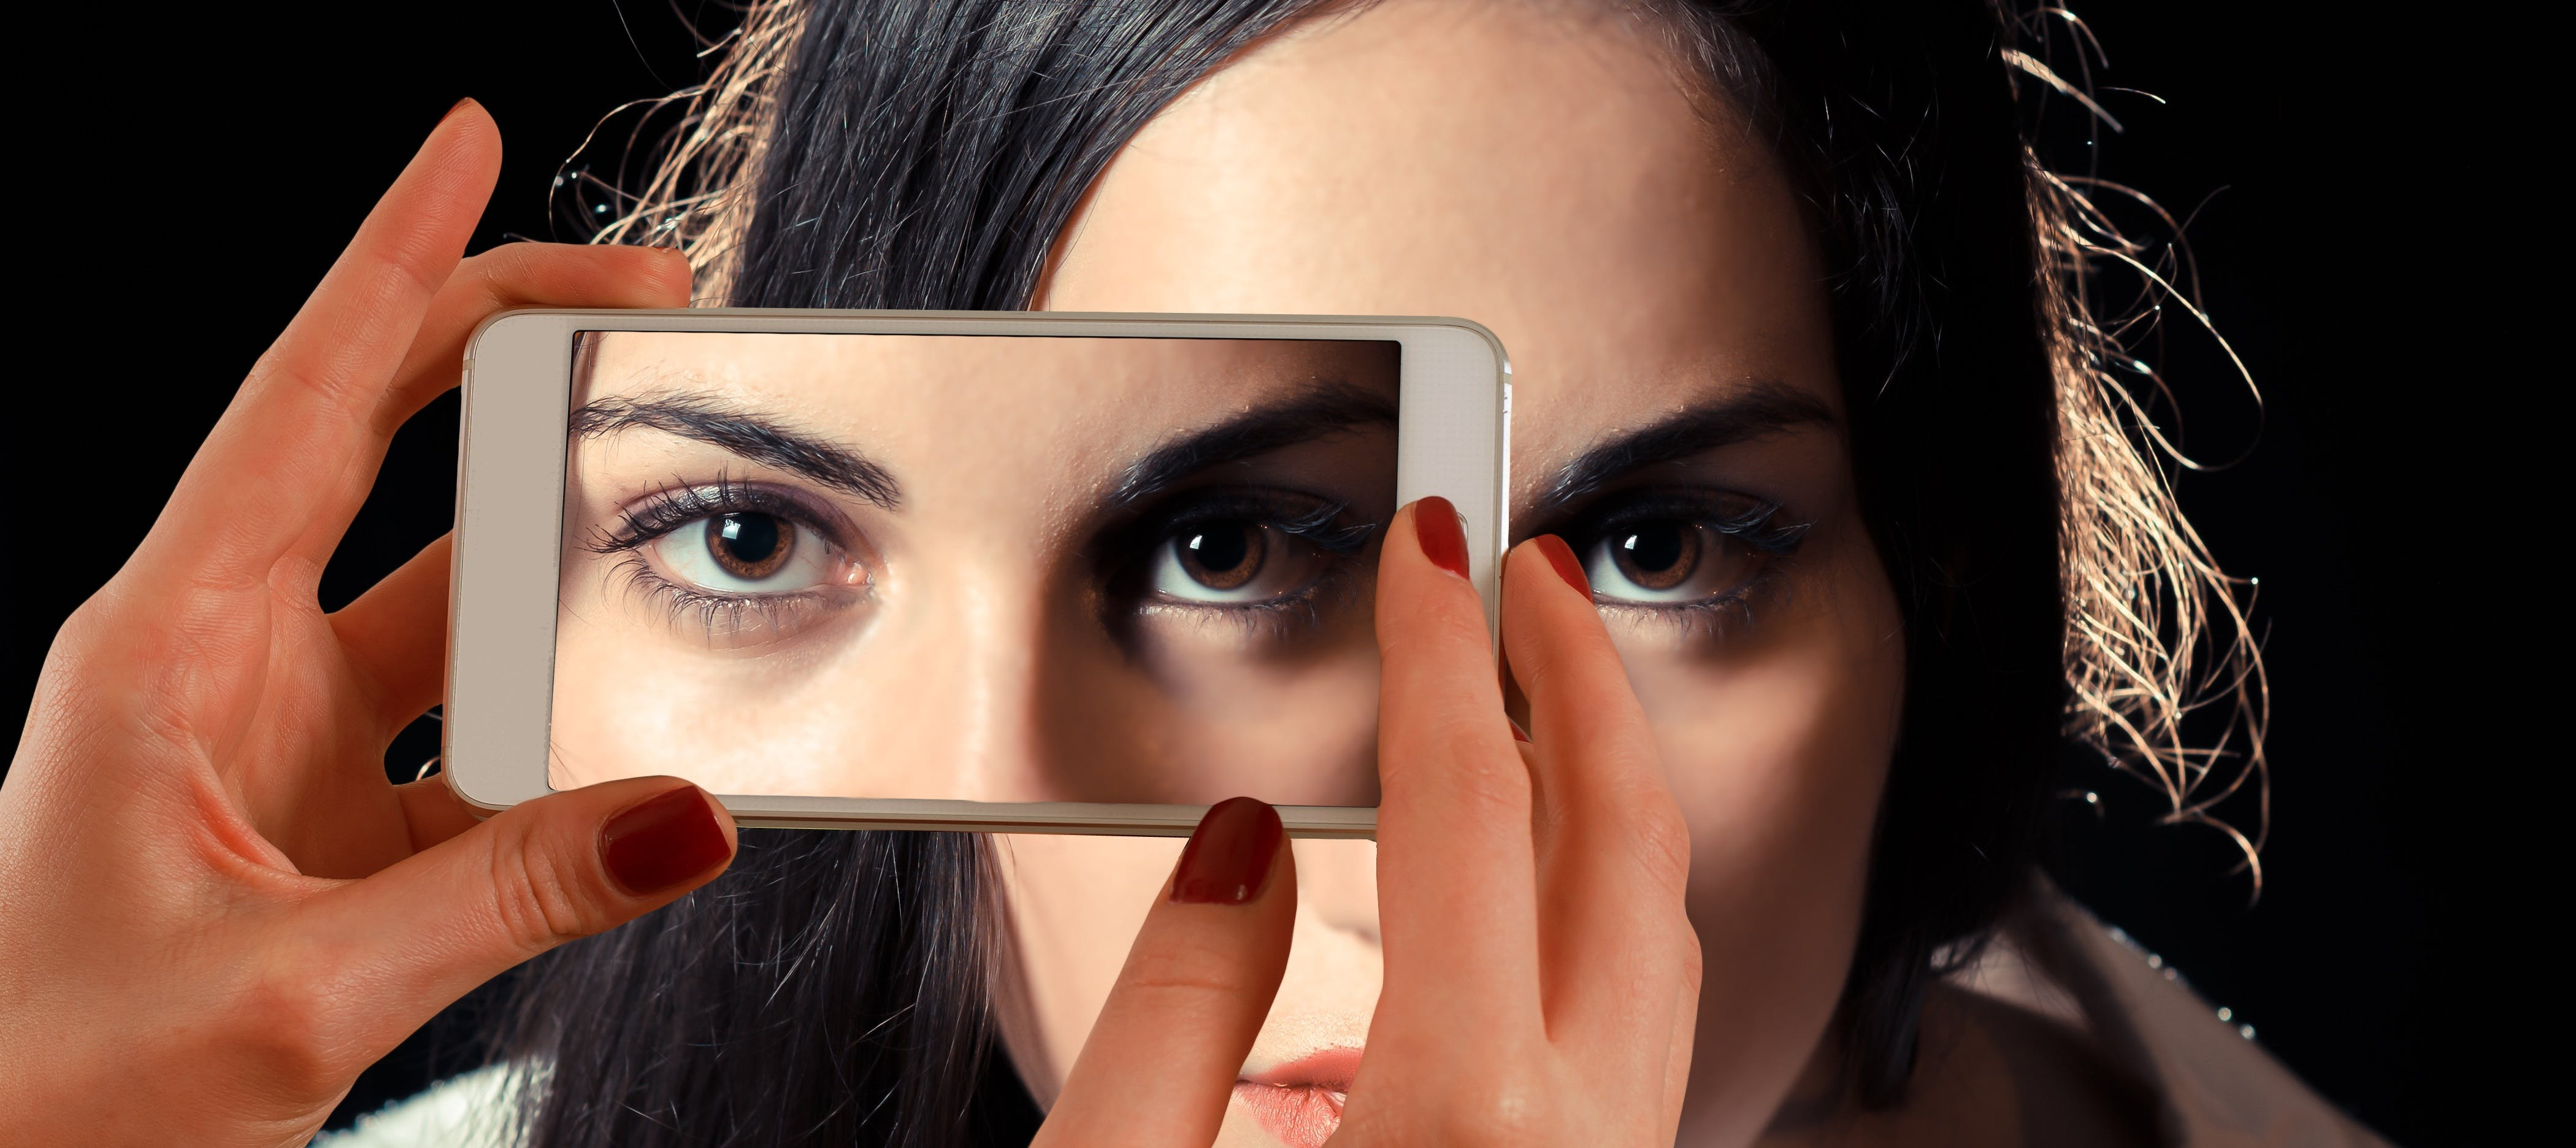 Eyebrow of Woman Taken Shot by White Smartphone Inside Well Lighted Room